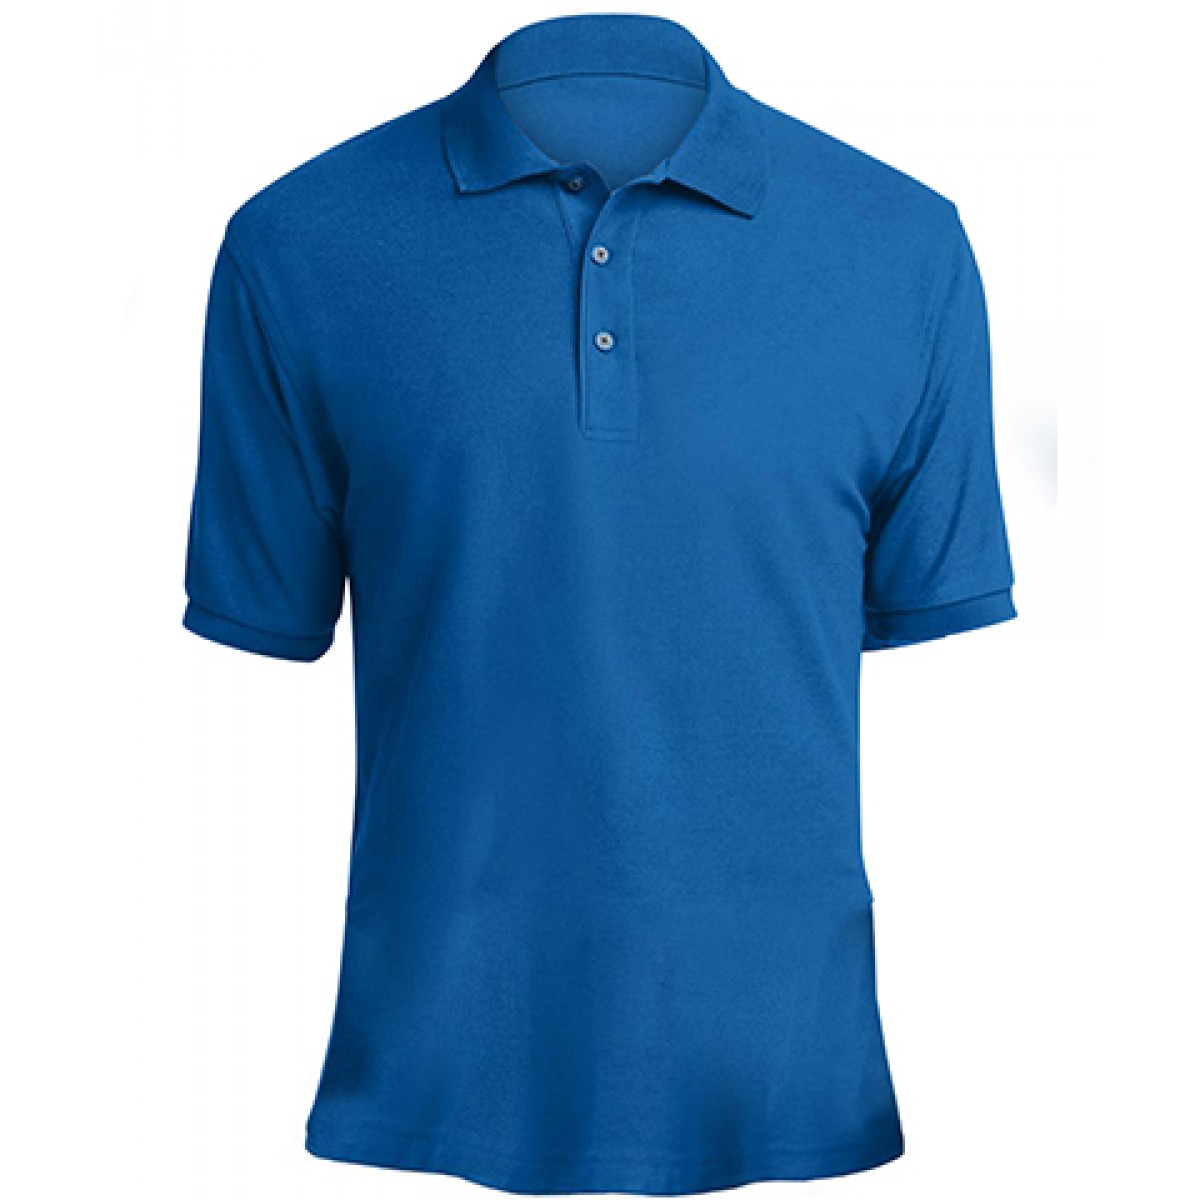 Womens Classic Polo -Royal Blue-3XL